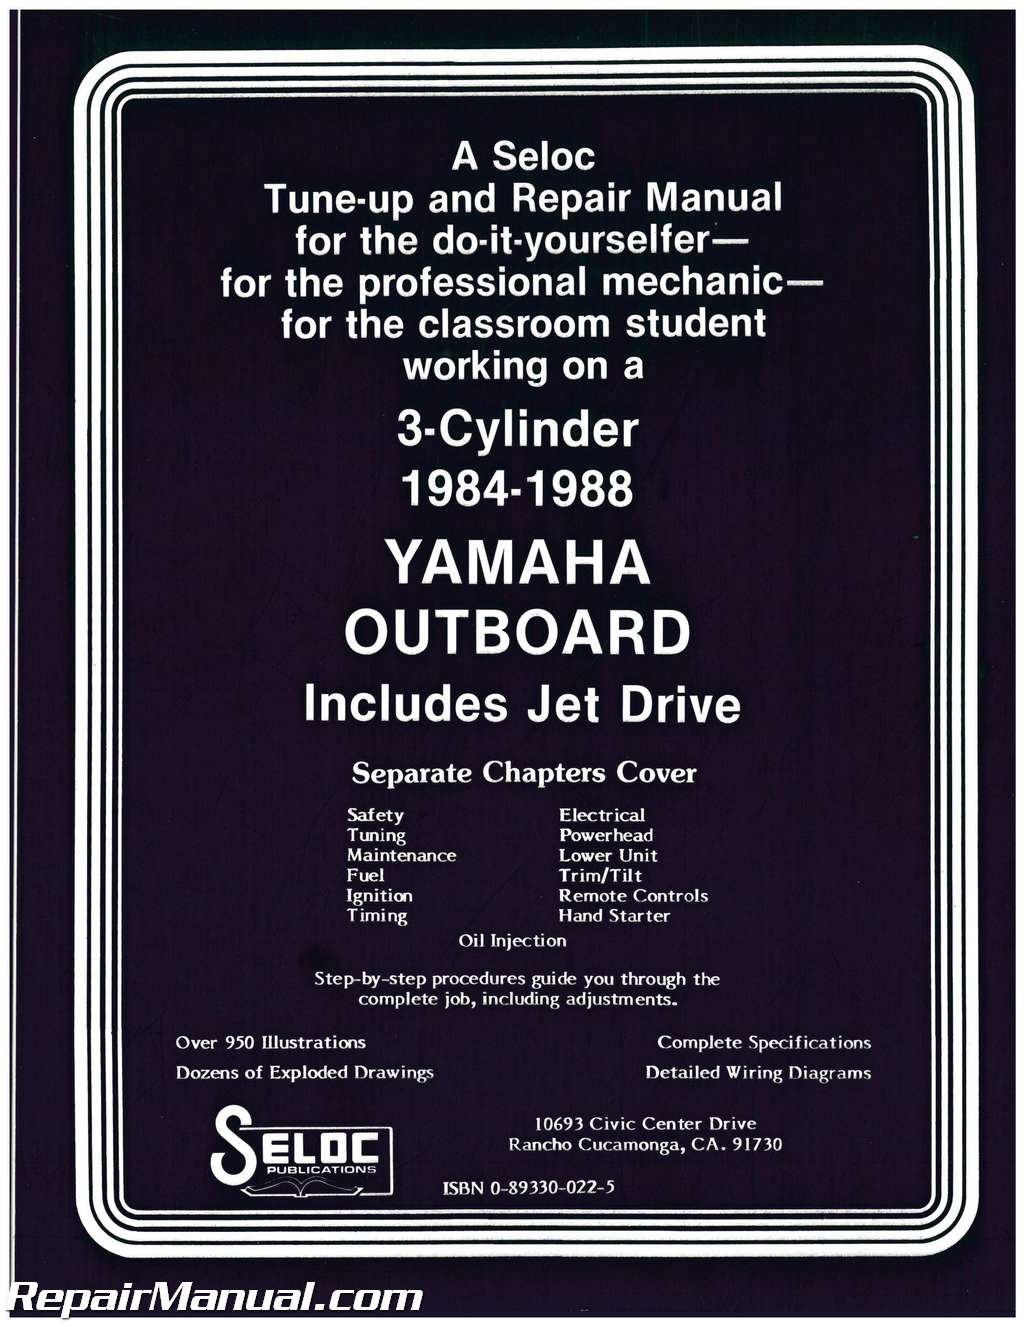 1988 Yamaha Outboard Wiring Diagram Libraries Used 1984 3 Cylinder Engine Repair Manual By Seloc1988